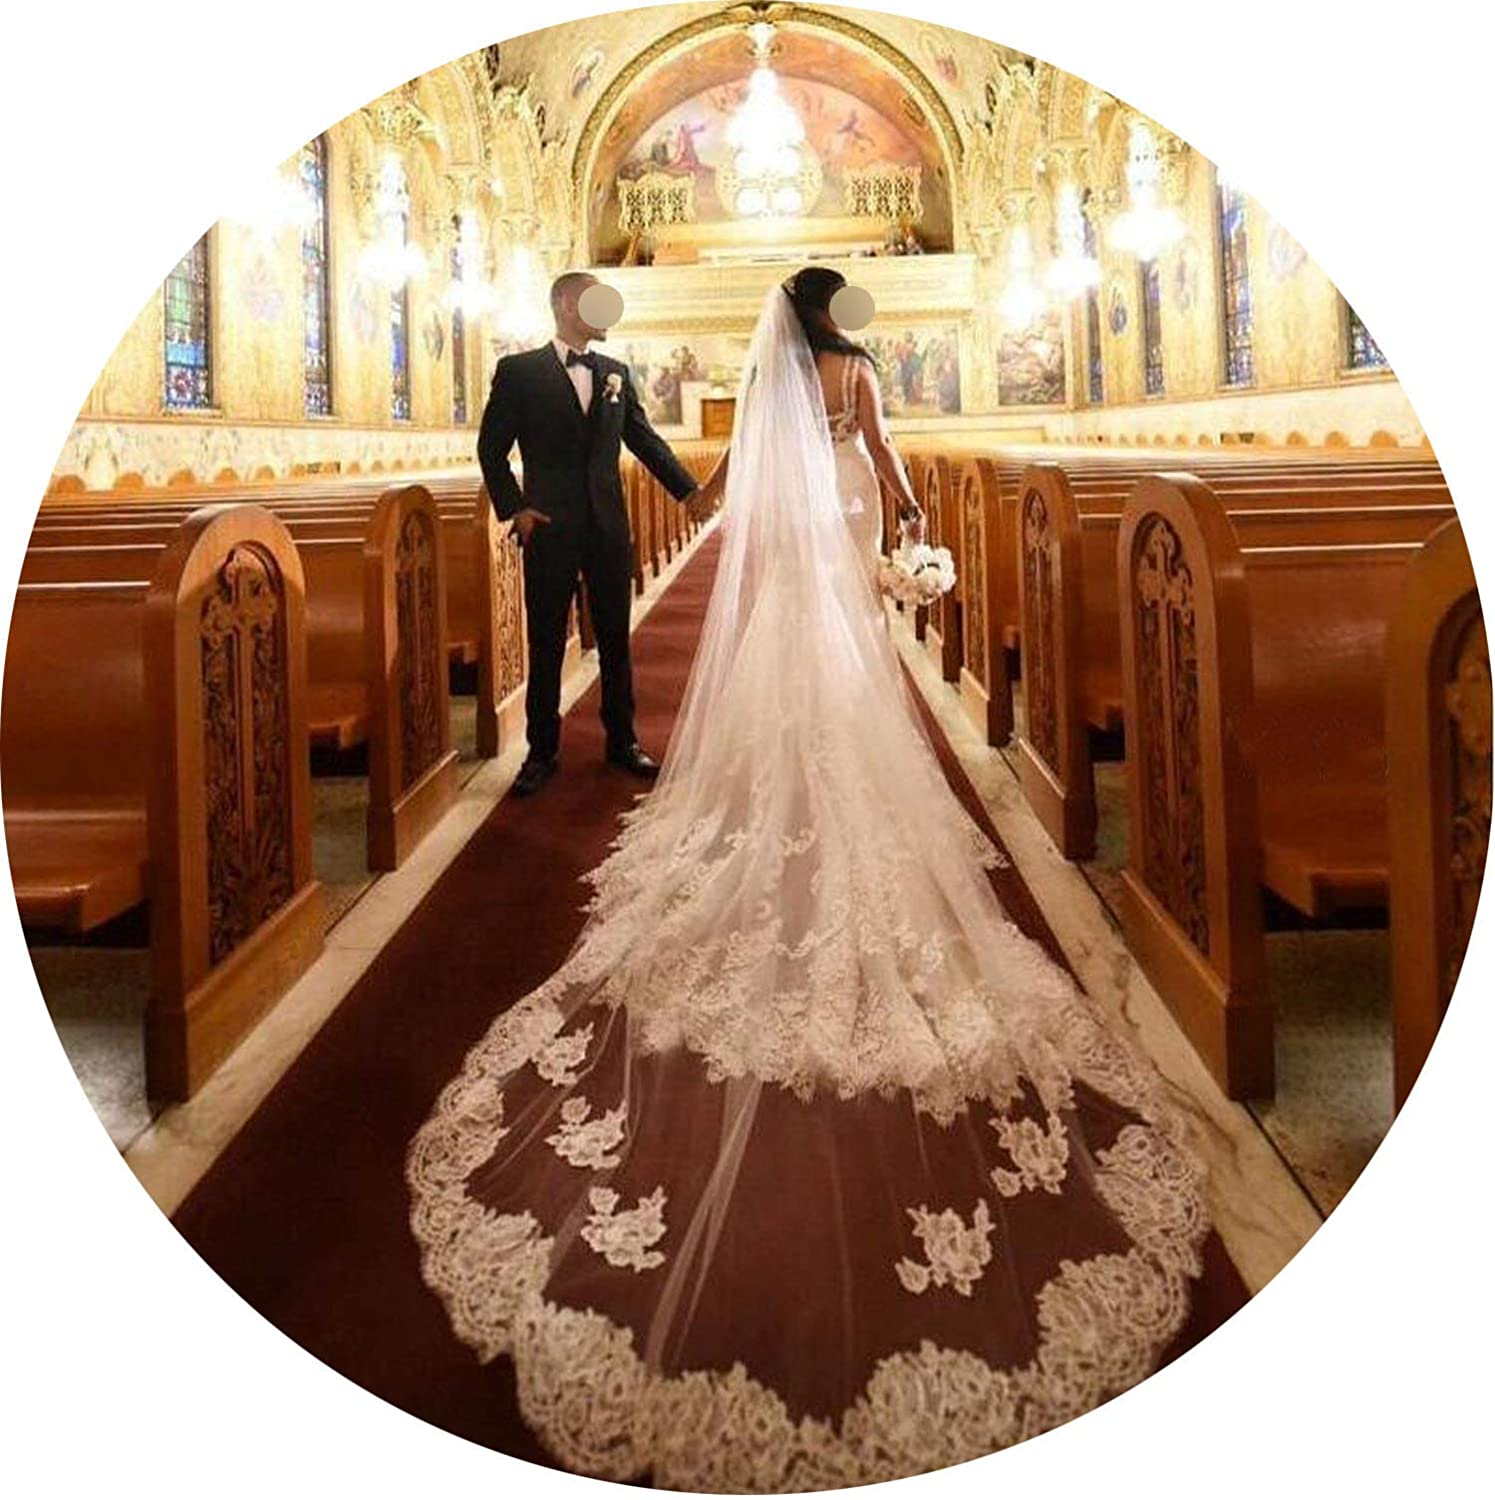 Cathedral Long Wedding Veil 5M One Tier Lace Applique Edge 2019 Bridal Veil With Comb White Ivory Wedding Headpiece,Ivory,500Cm